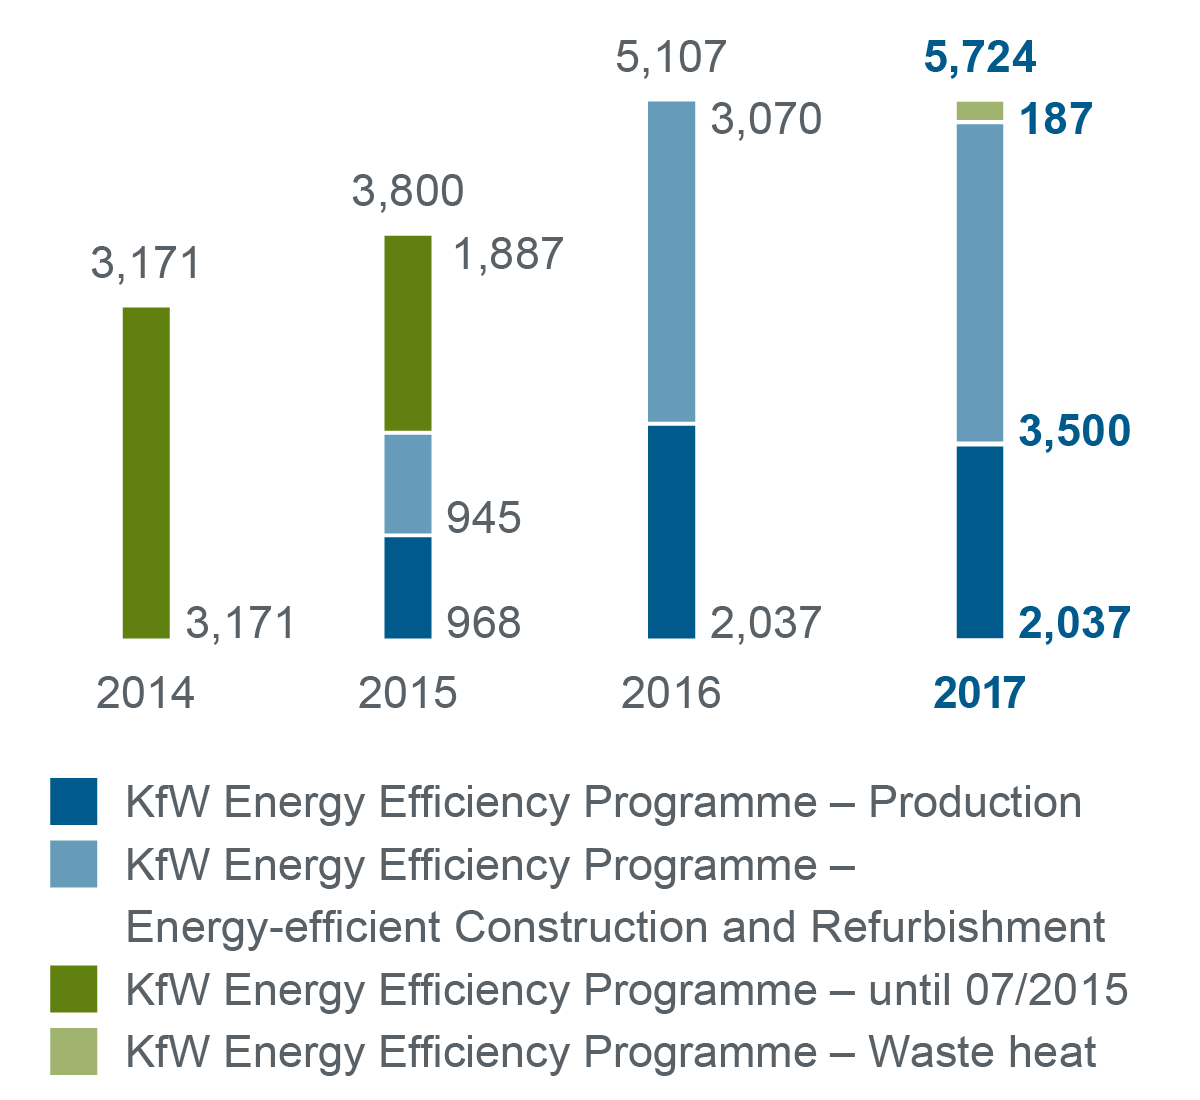 Graphic increasing energy efficiency in companies 2014-2017